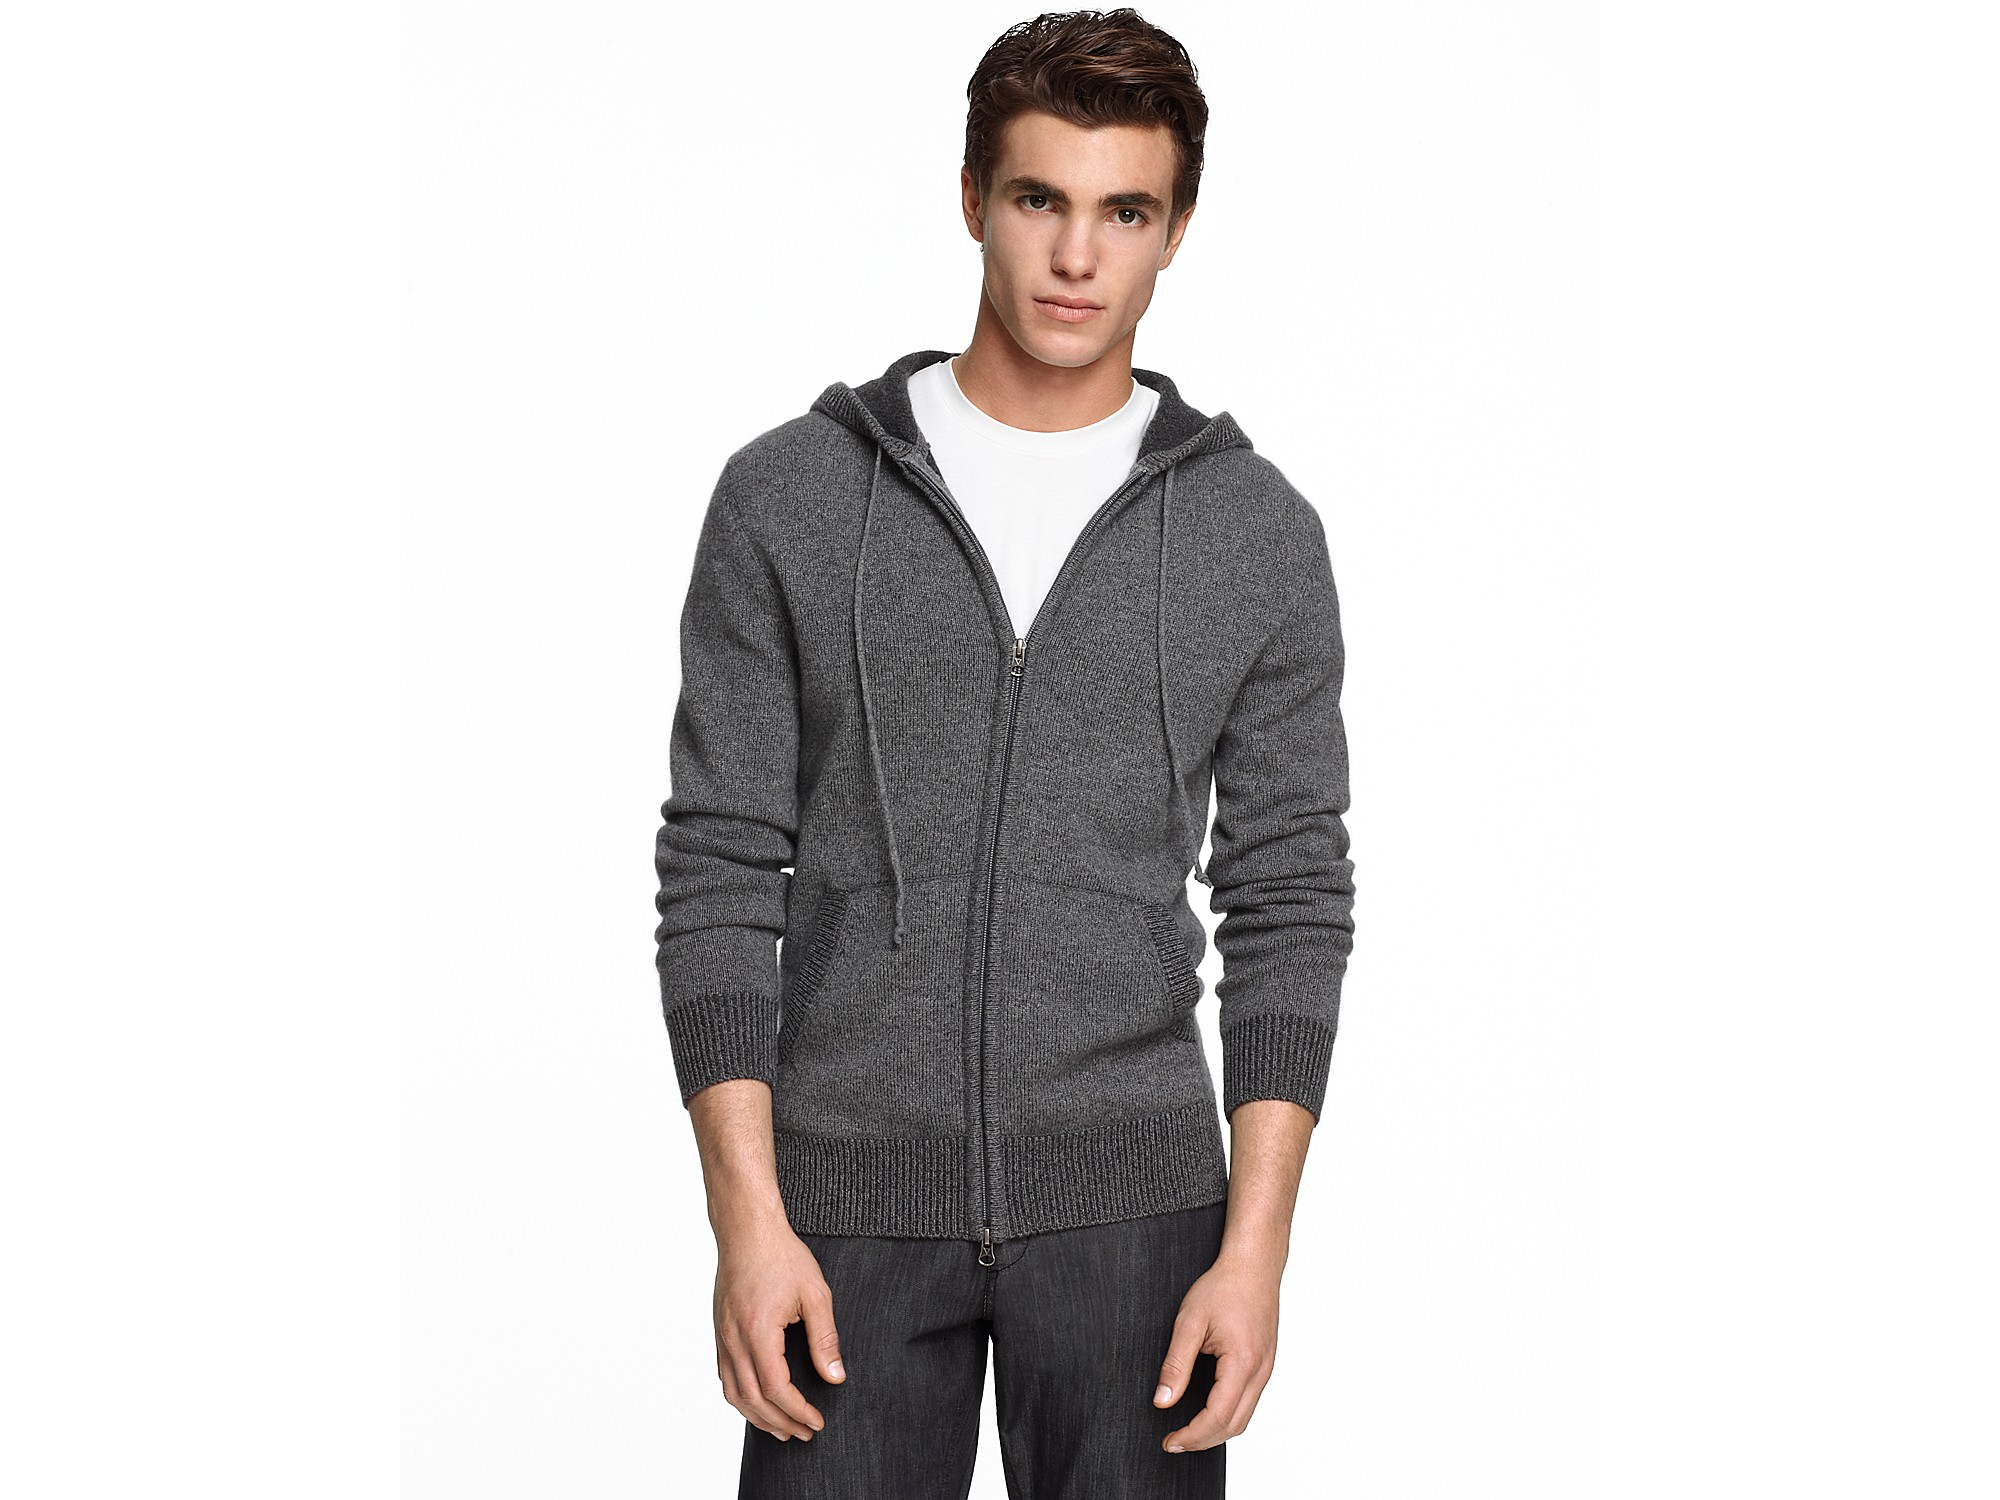 Vince Plated Cashmere Zip Up Hooded Sweater In Gray For